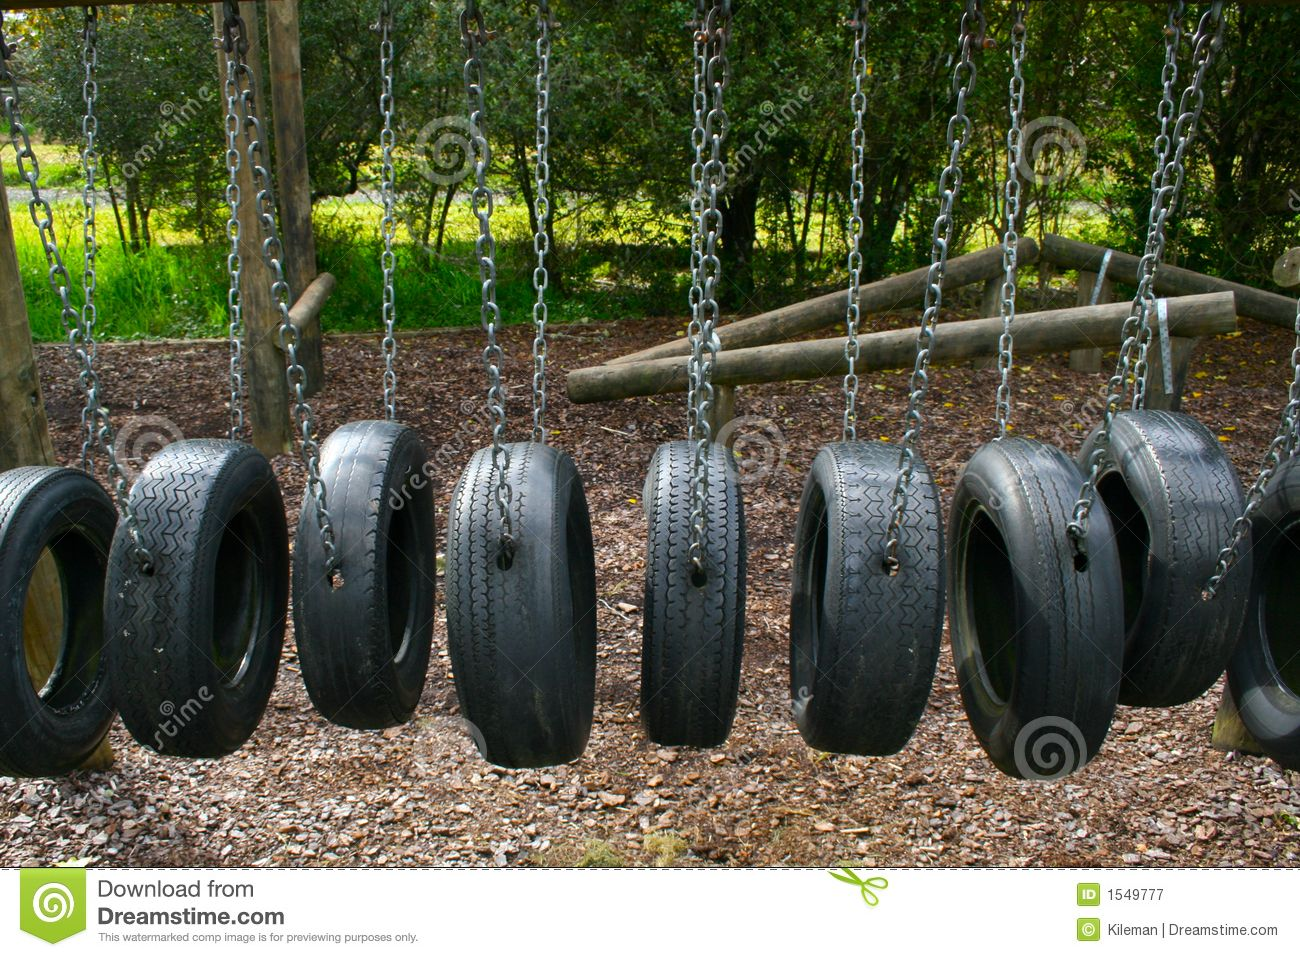 HOW TO BUILD AN OBSTACLE COURSE In This Project Old Tires Are Recycled Into A